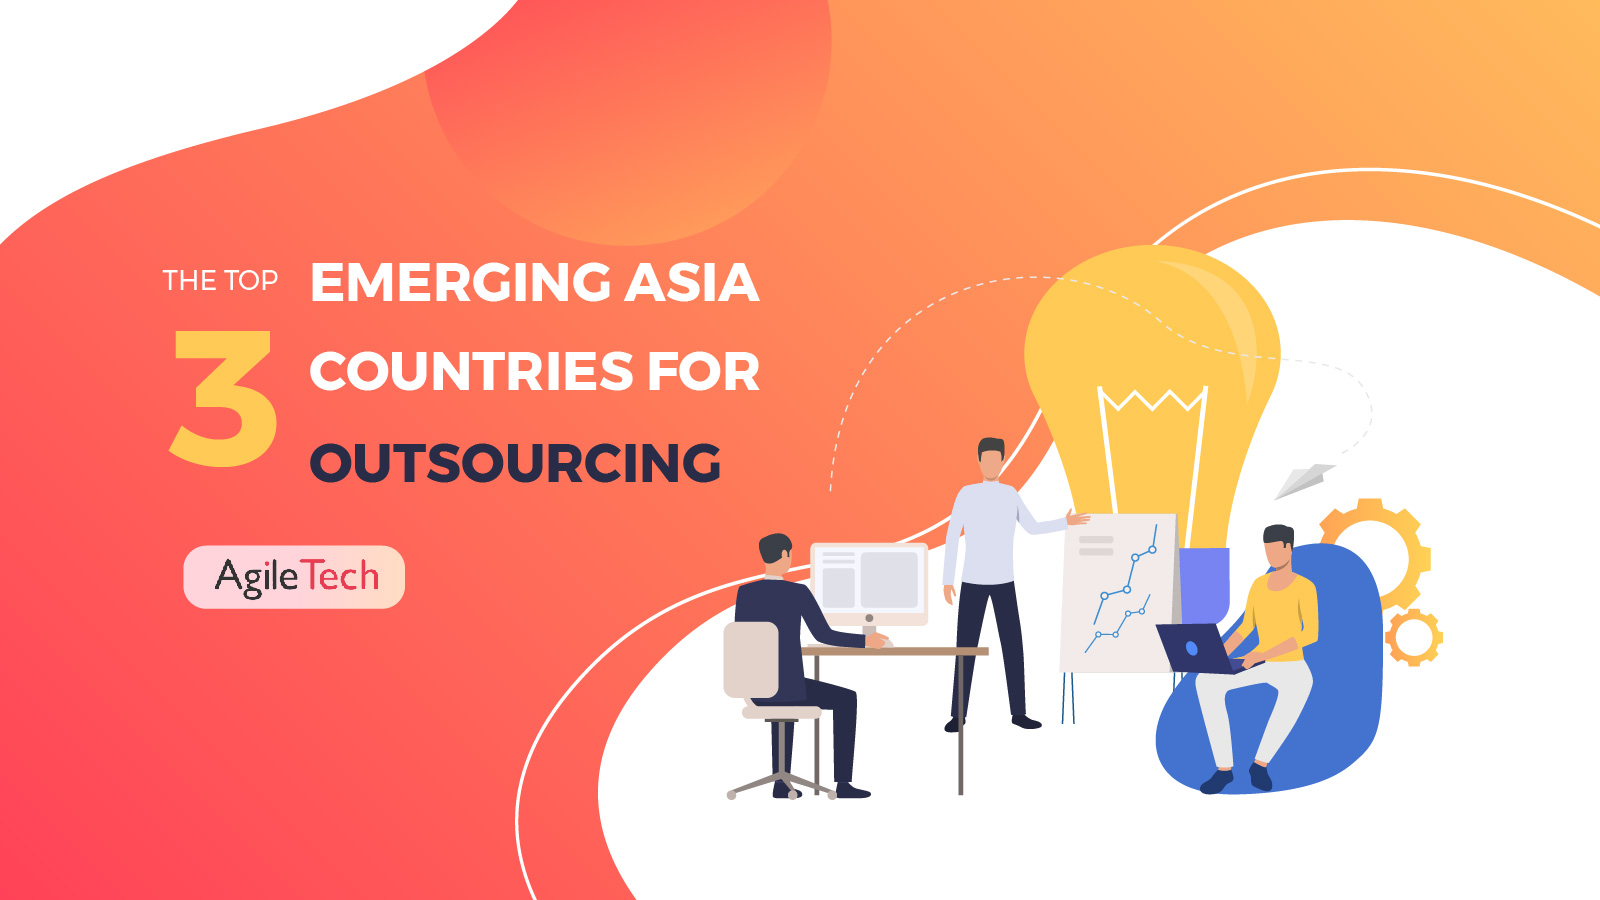 top emerging asia countries for outsourcing 2020, it outsourcing Vietnam